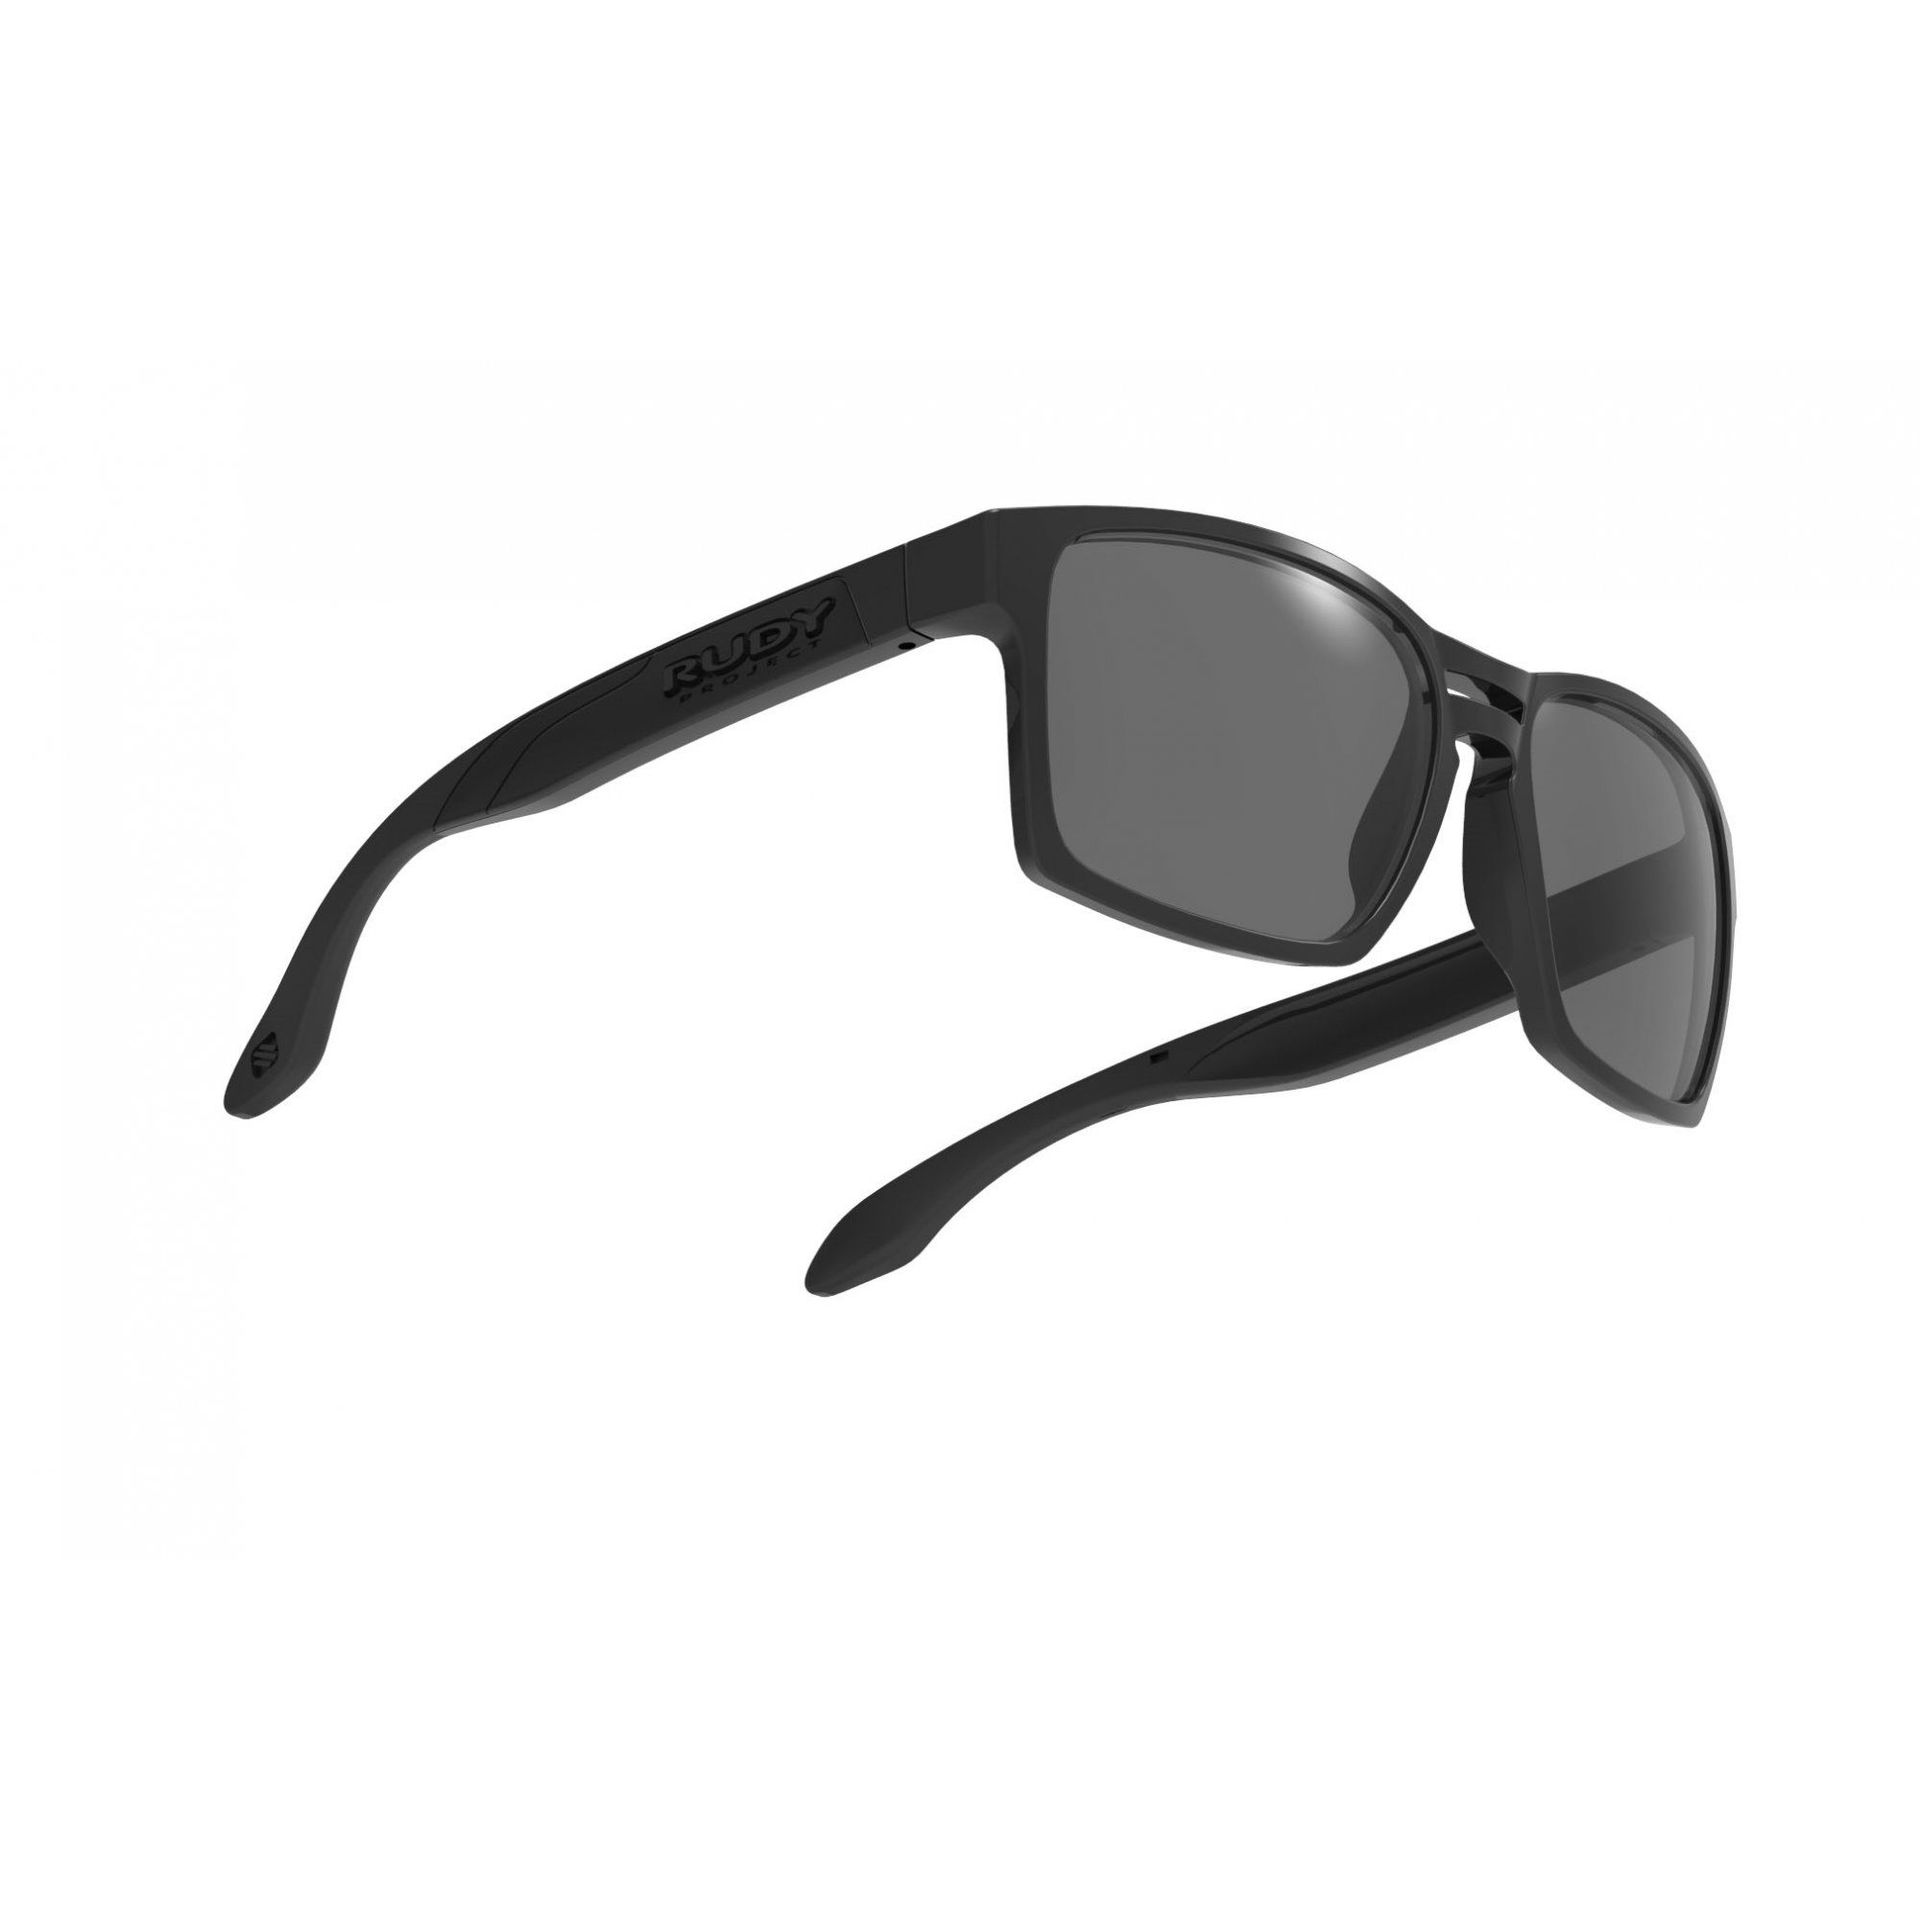 OKULARY RUDY PROJECT SPINAIR 57 BLACK + SMOKE BLACK SP571042 3